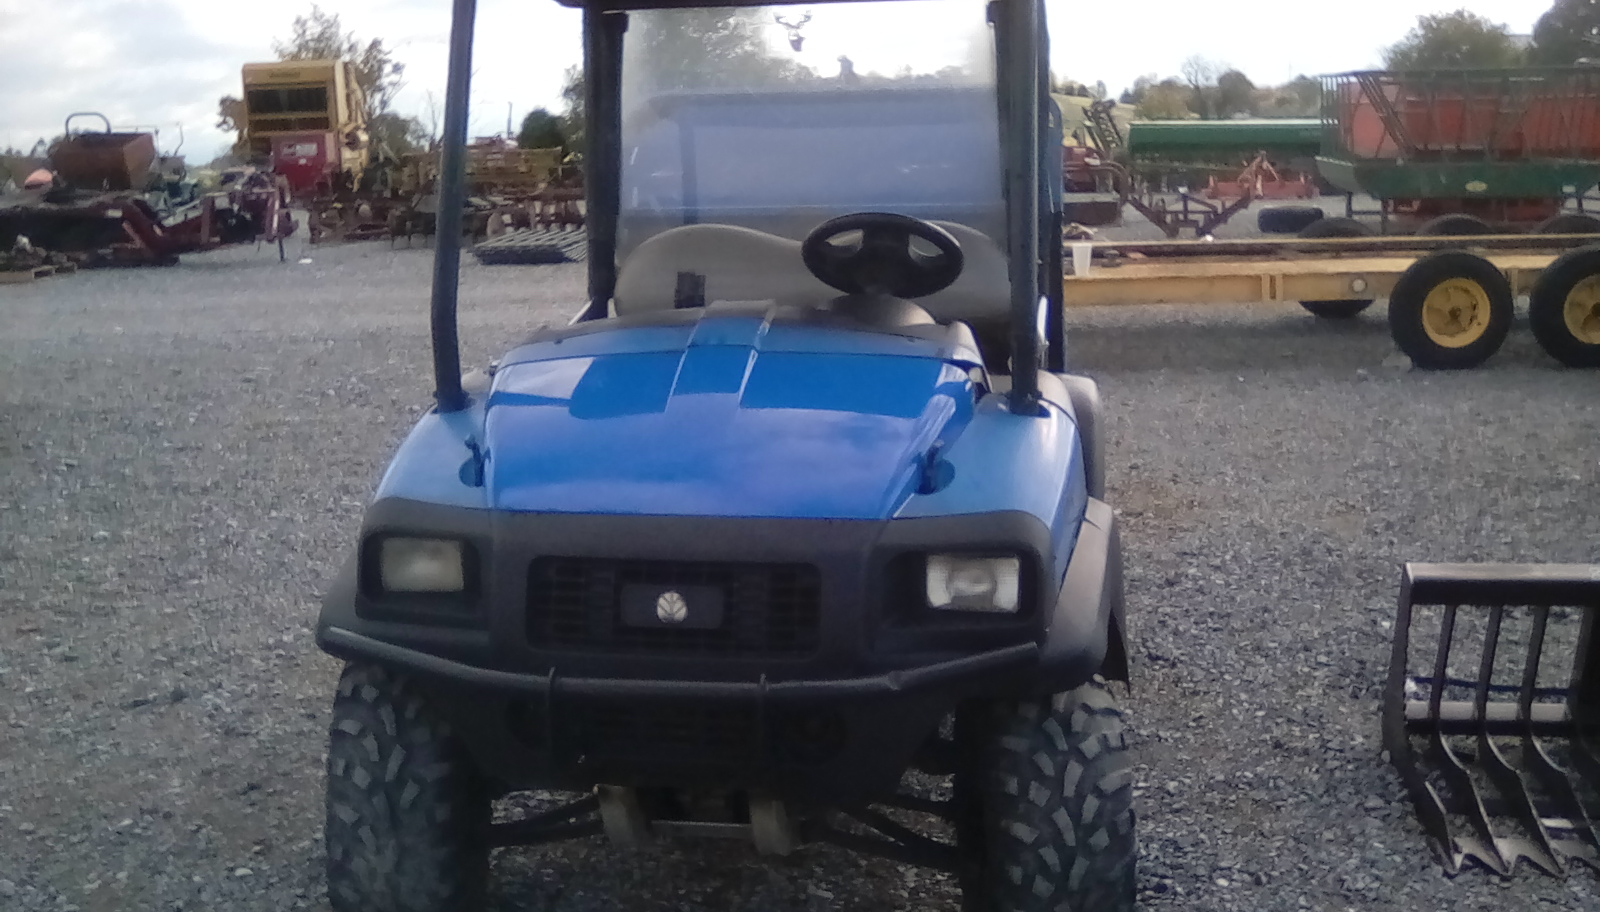 NEW HOLLAND 125 SIDE X SIDE Image